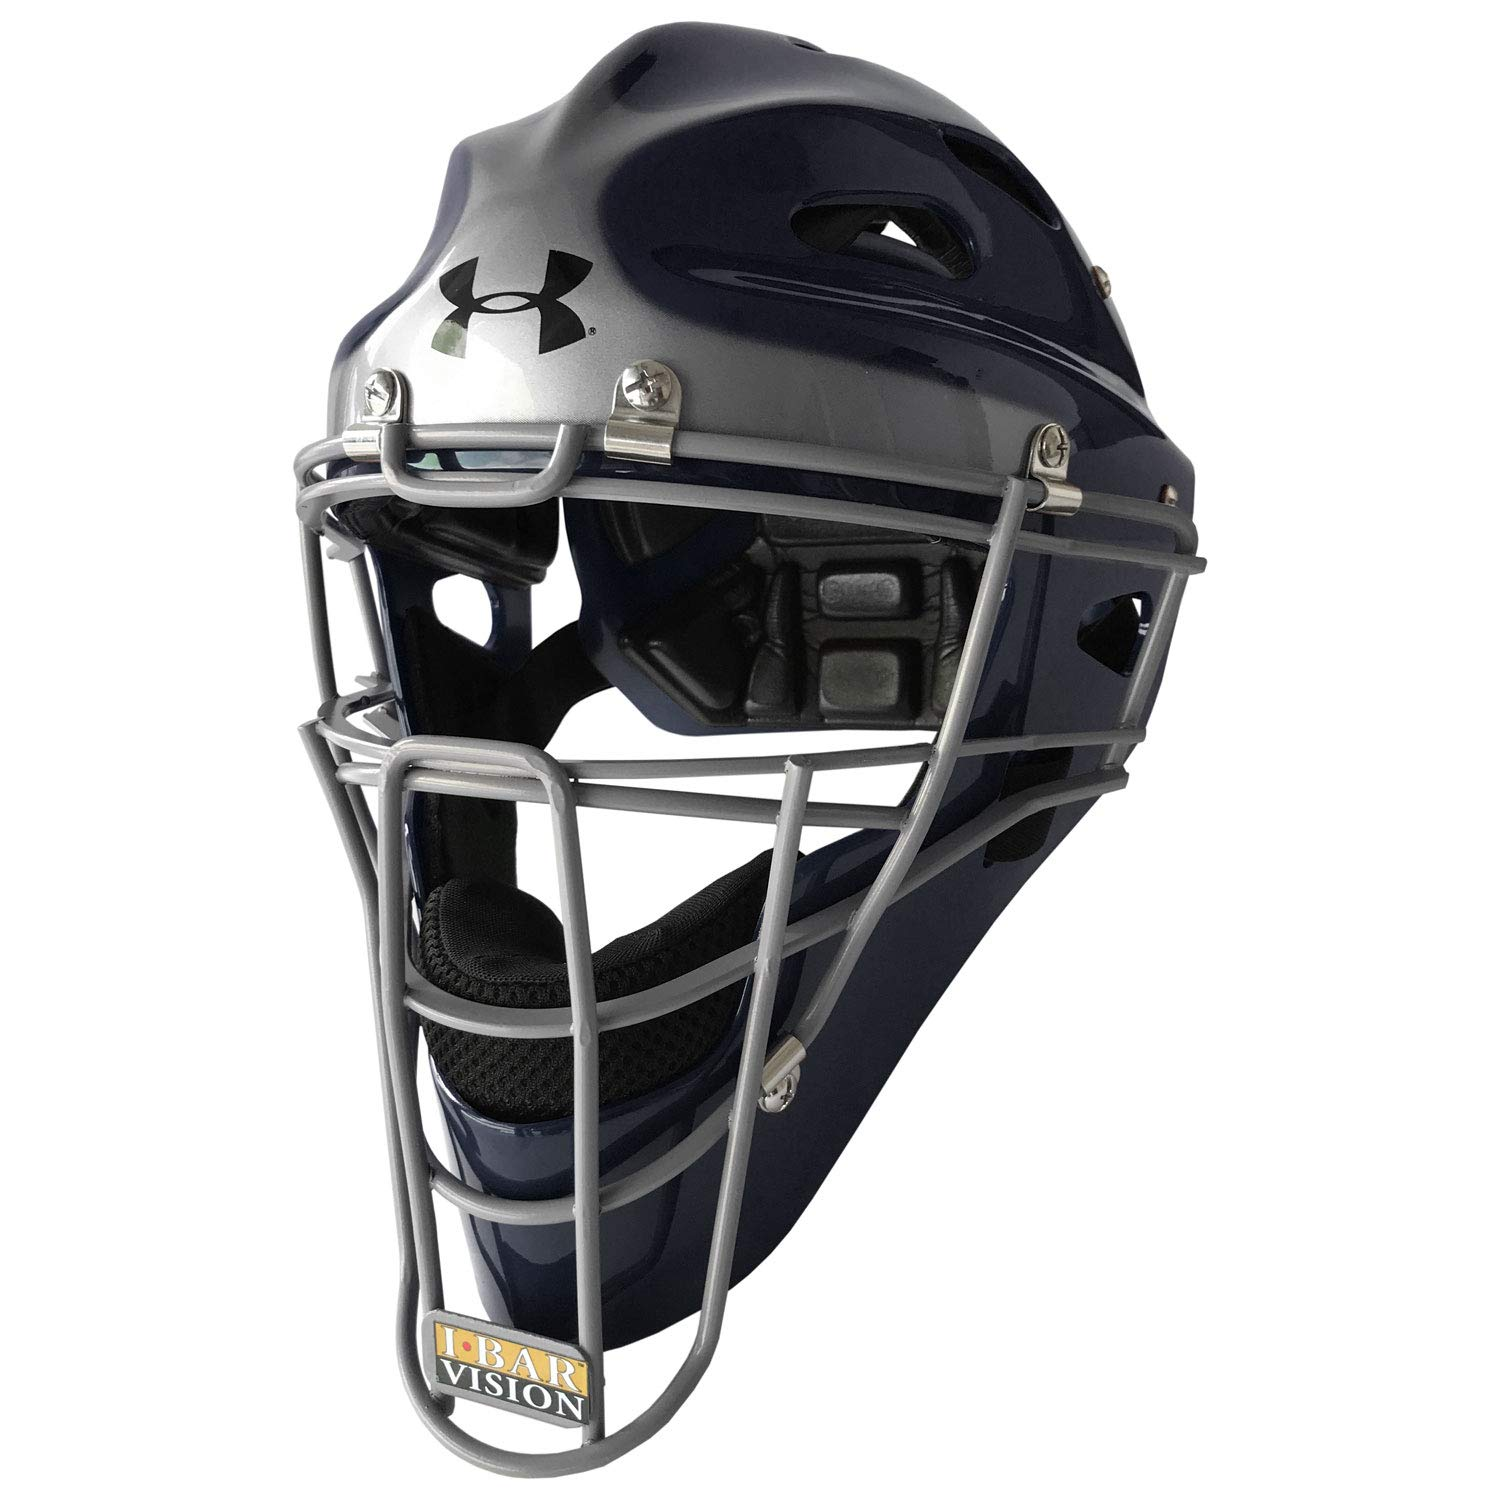 Under Armour Youth 2-Tone Baseball/Softball Catcher's Helmet by Under Armour